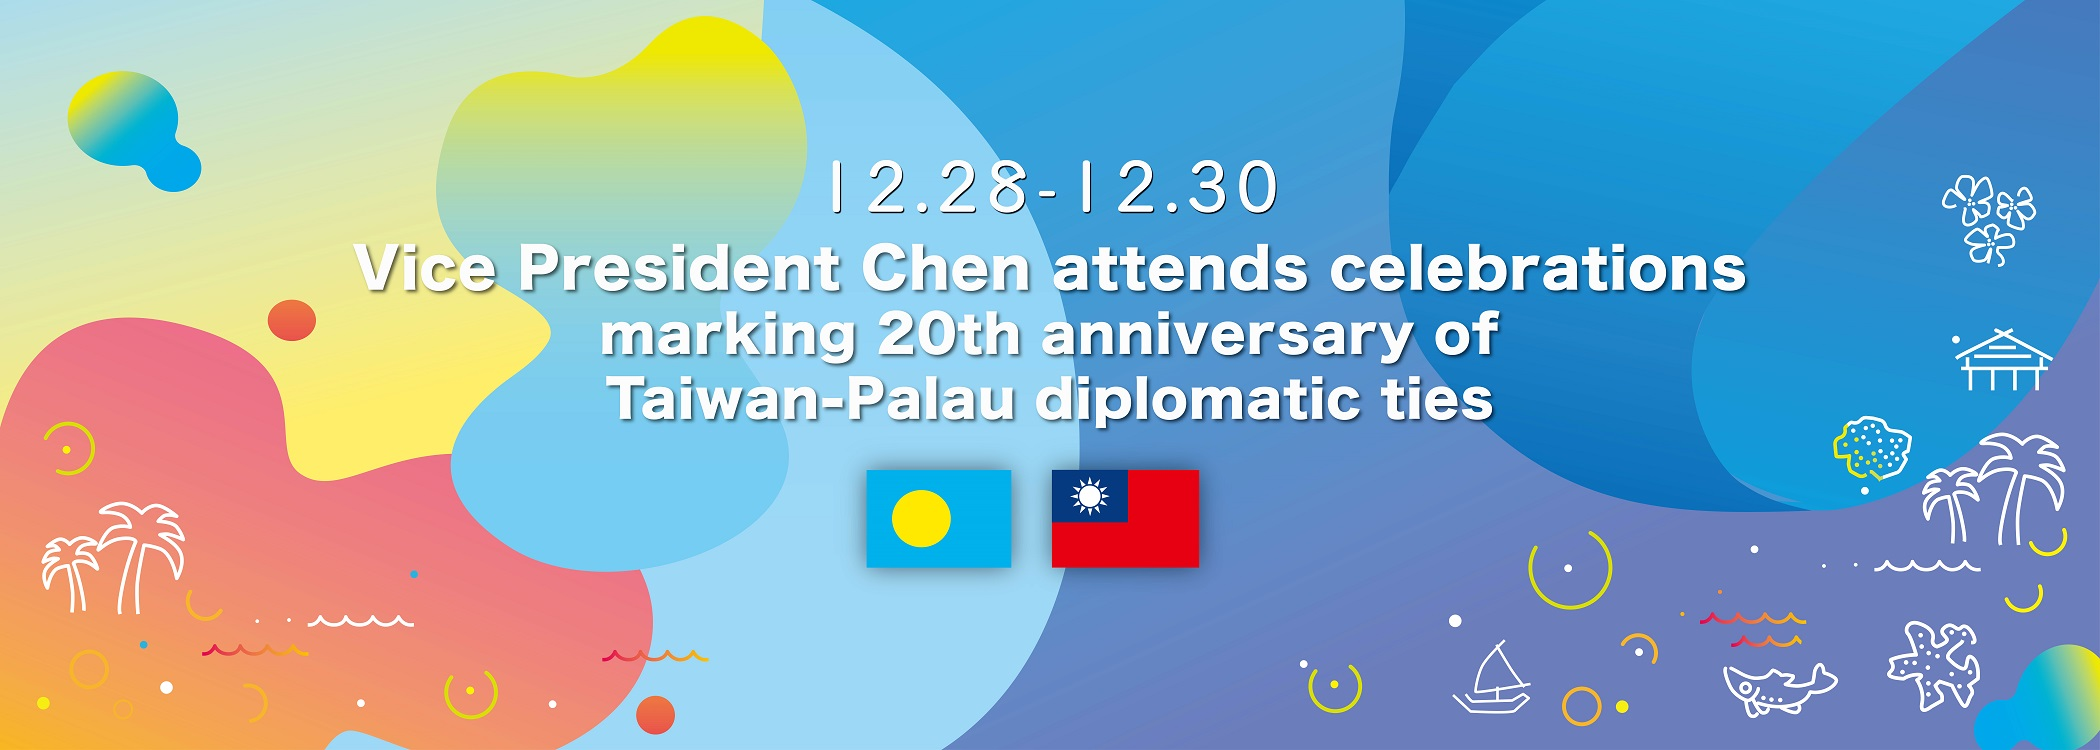 Vice President Chen attends celebrations marking 20th anniversary of Taiwan-Palau diplomatic ties